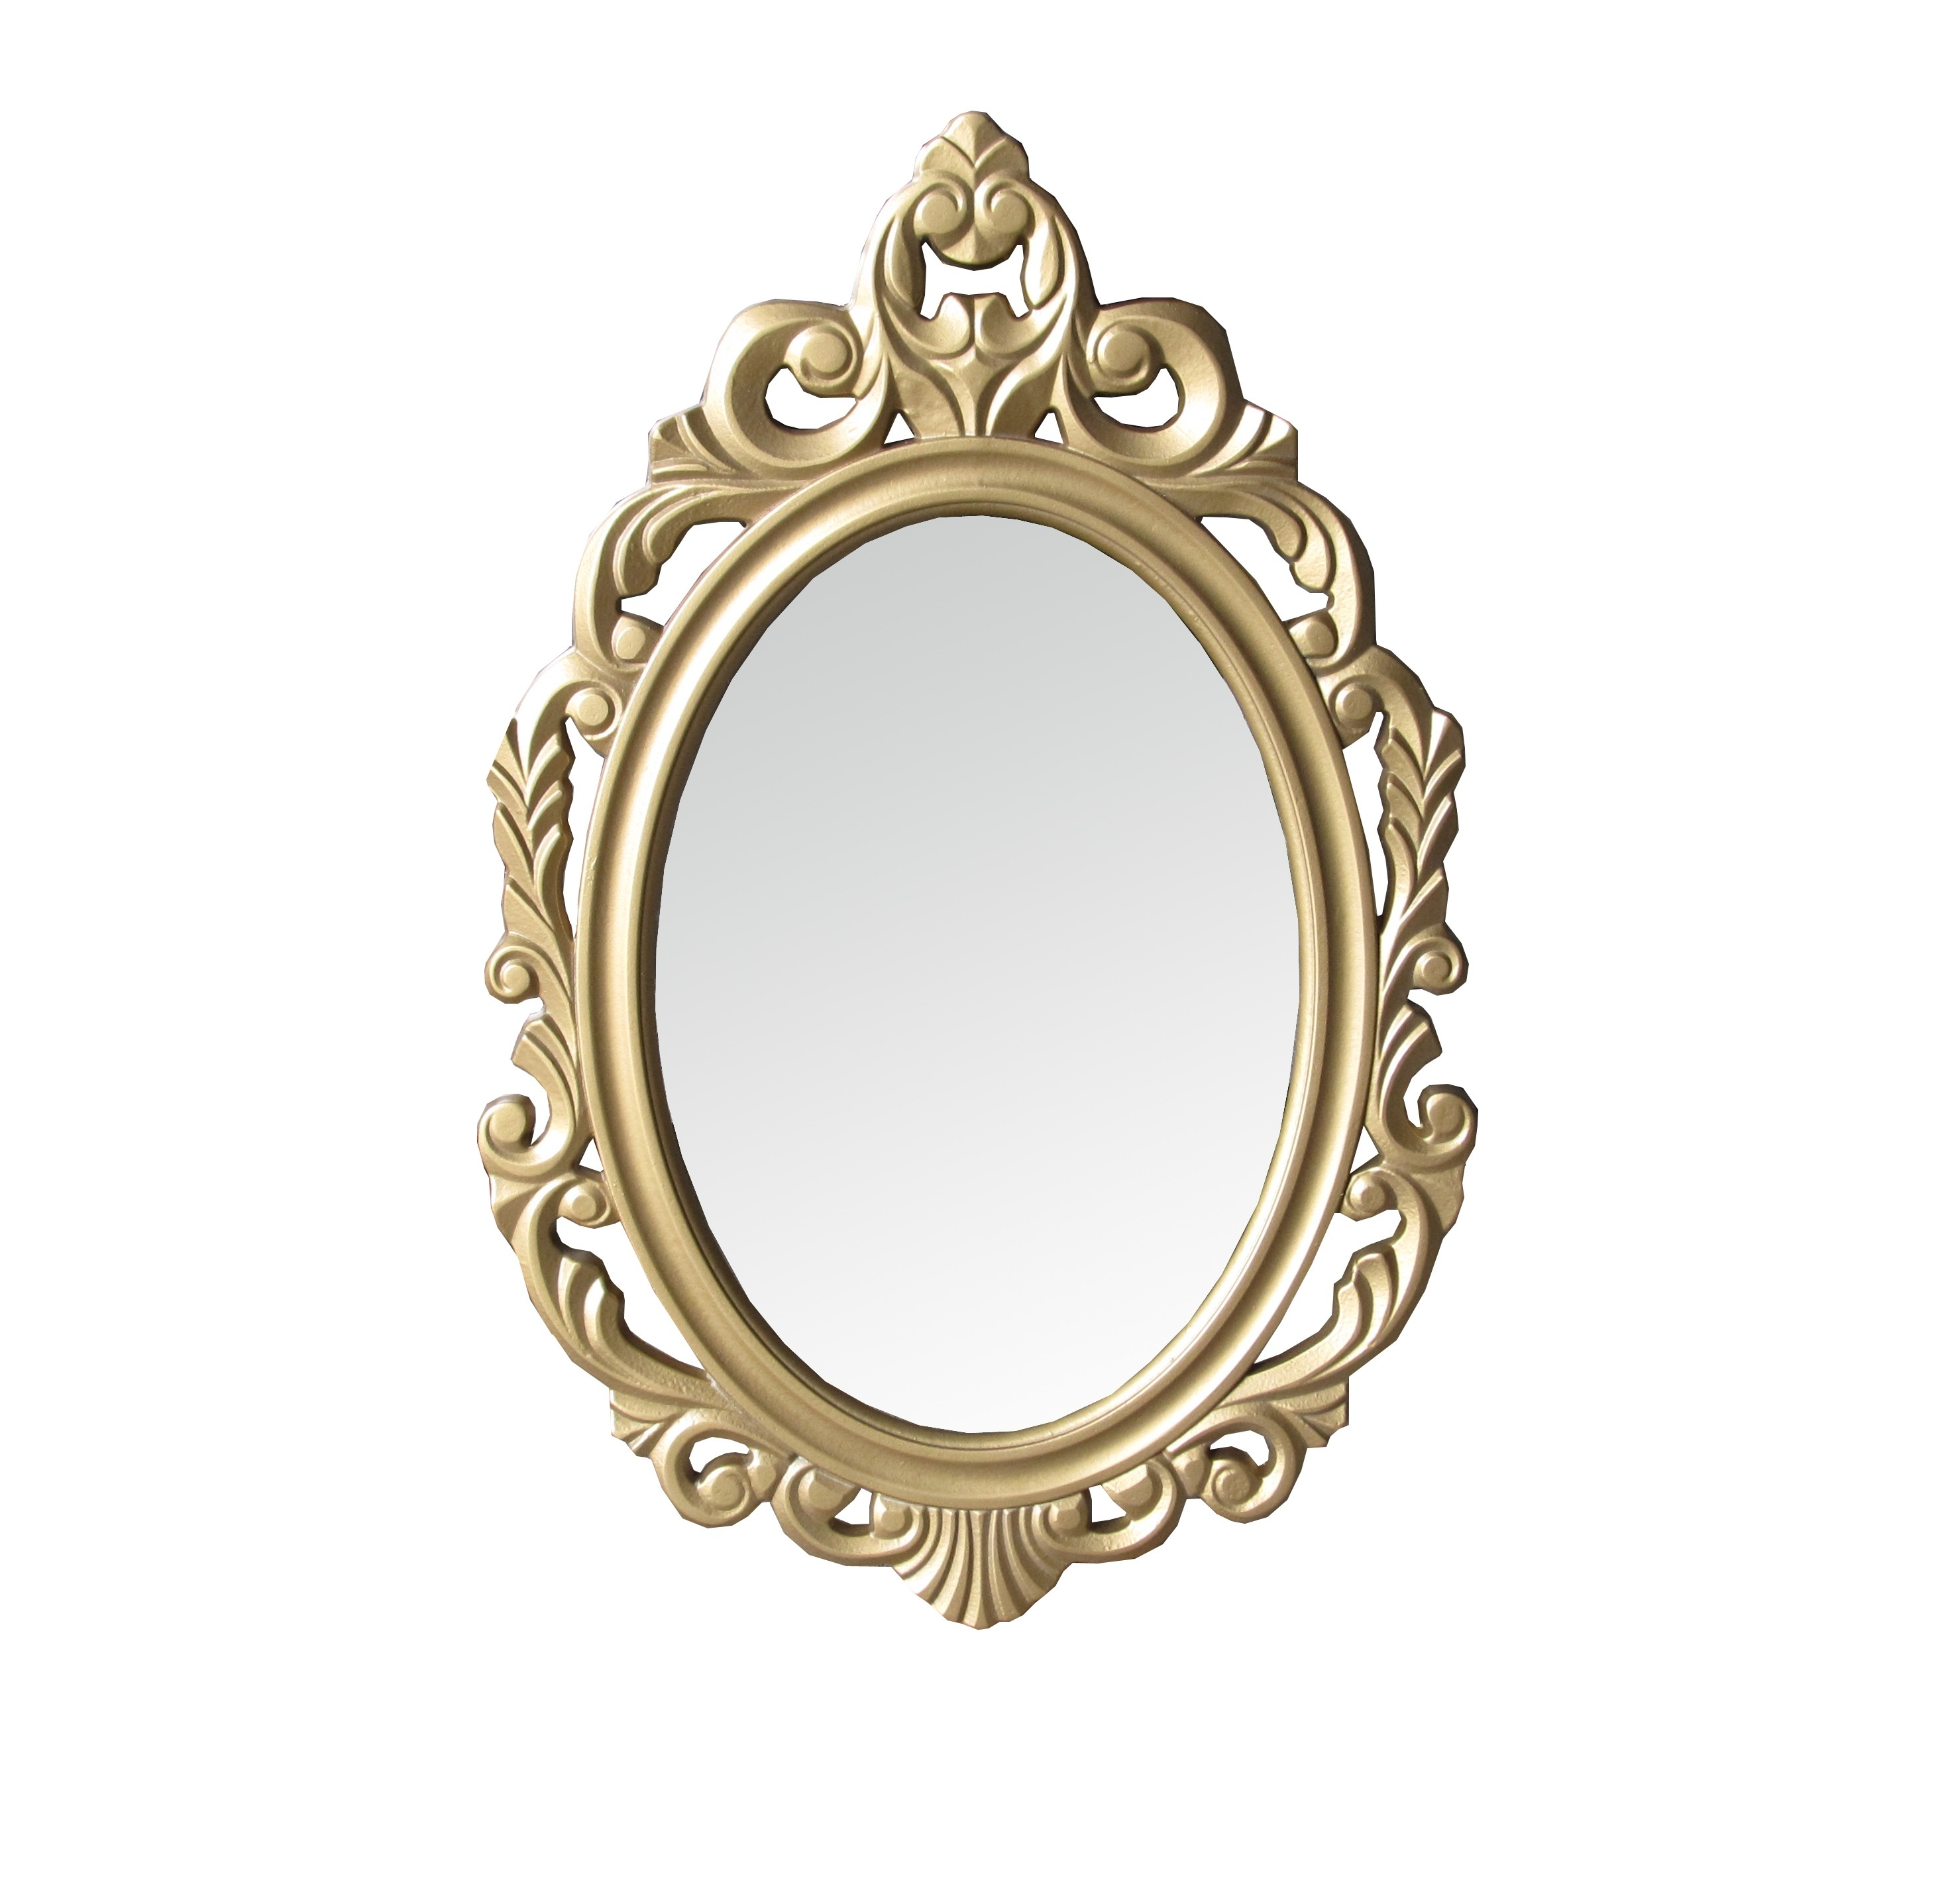 Interior Decoration Shab Chic Ornate Gold Oval Wall Mirror With Regard To Gold Shabby Chic Mirror (Image 8 of 15)